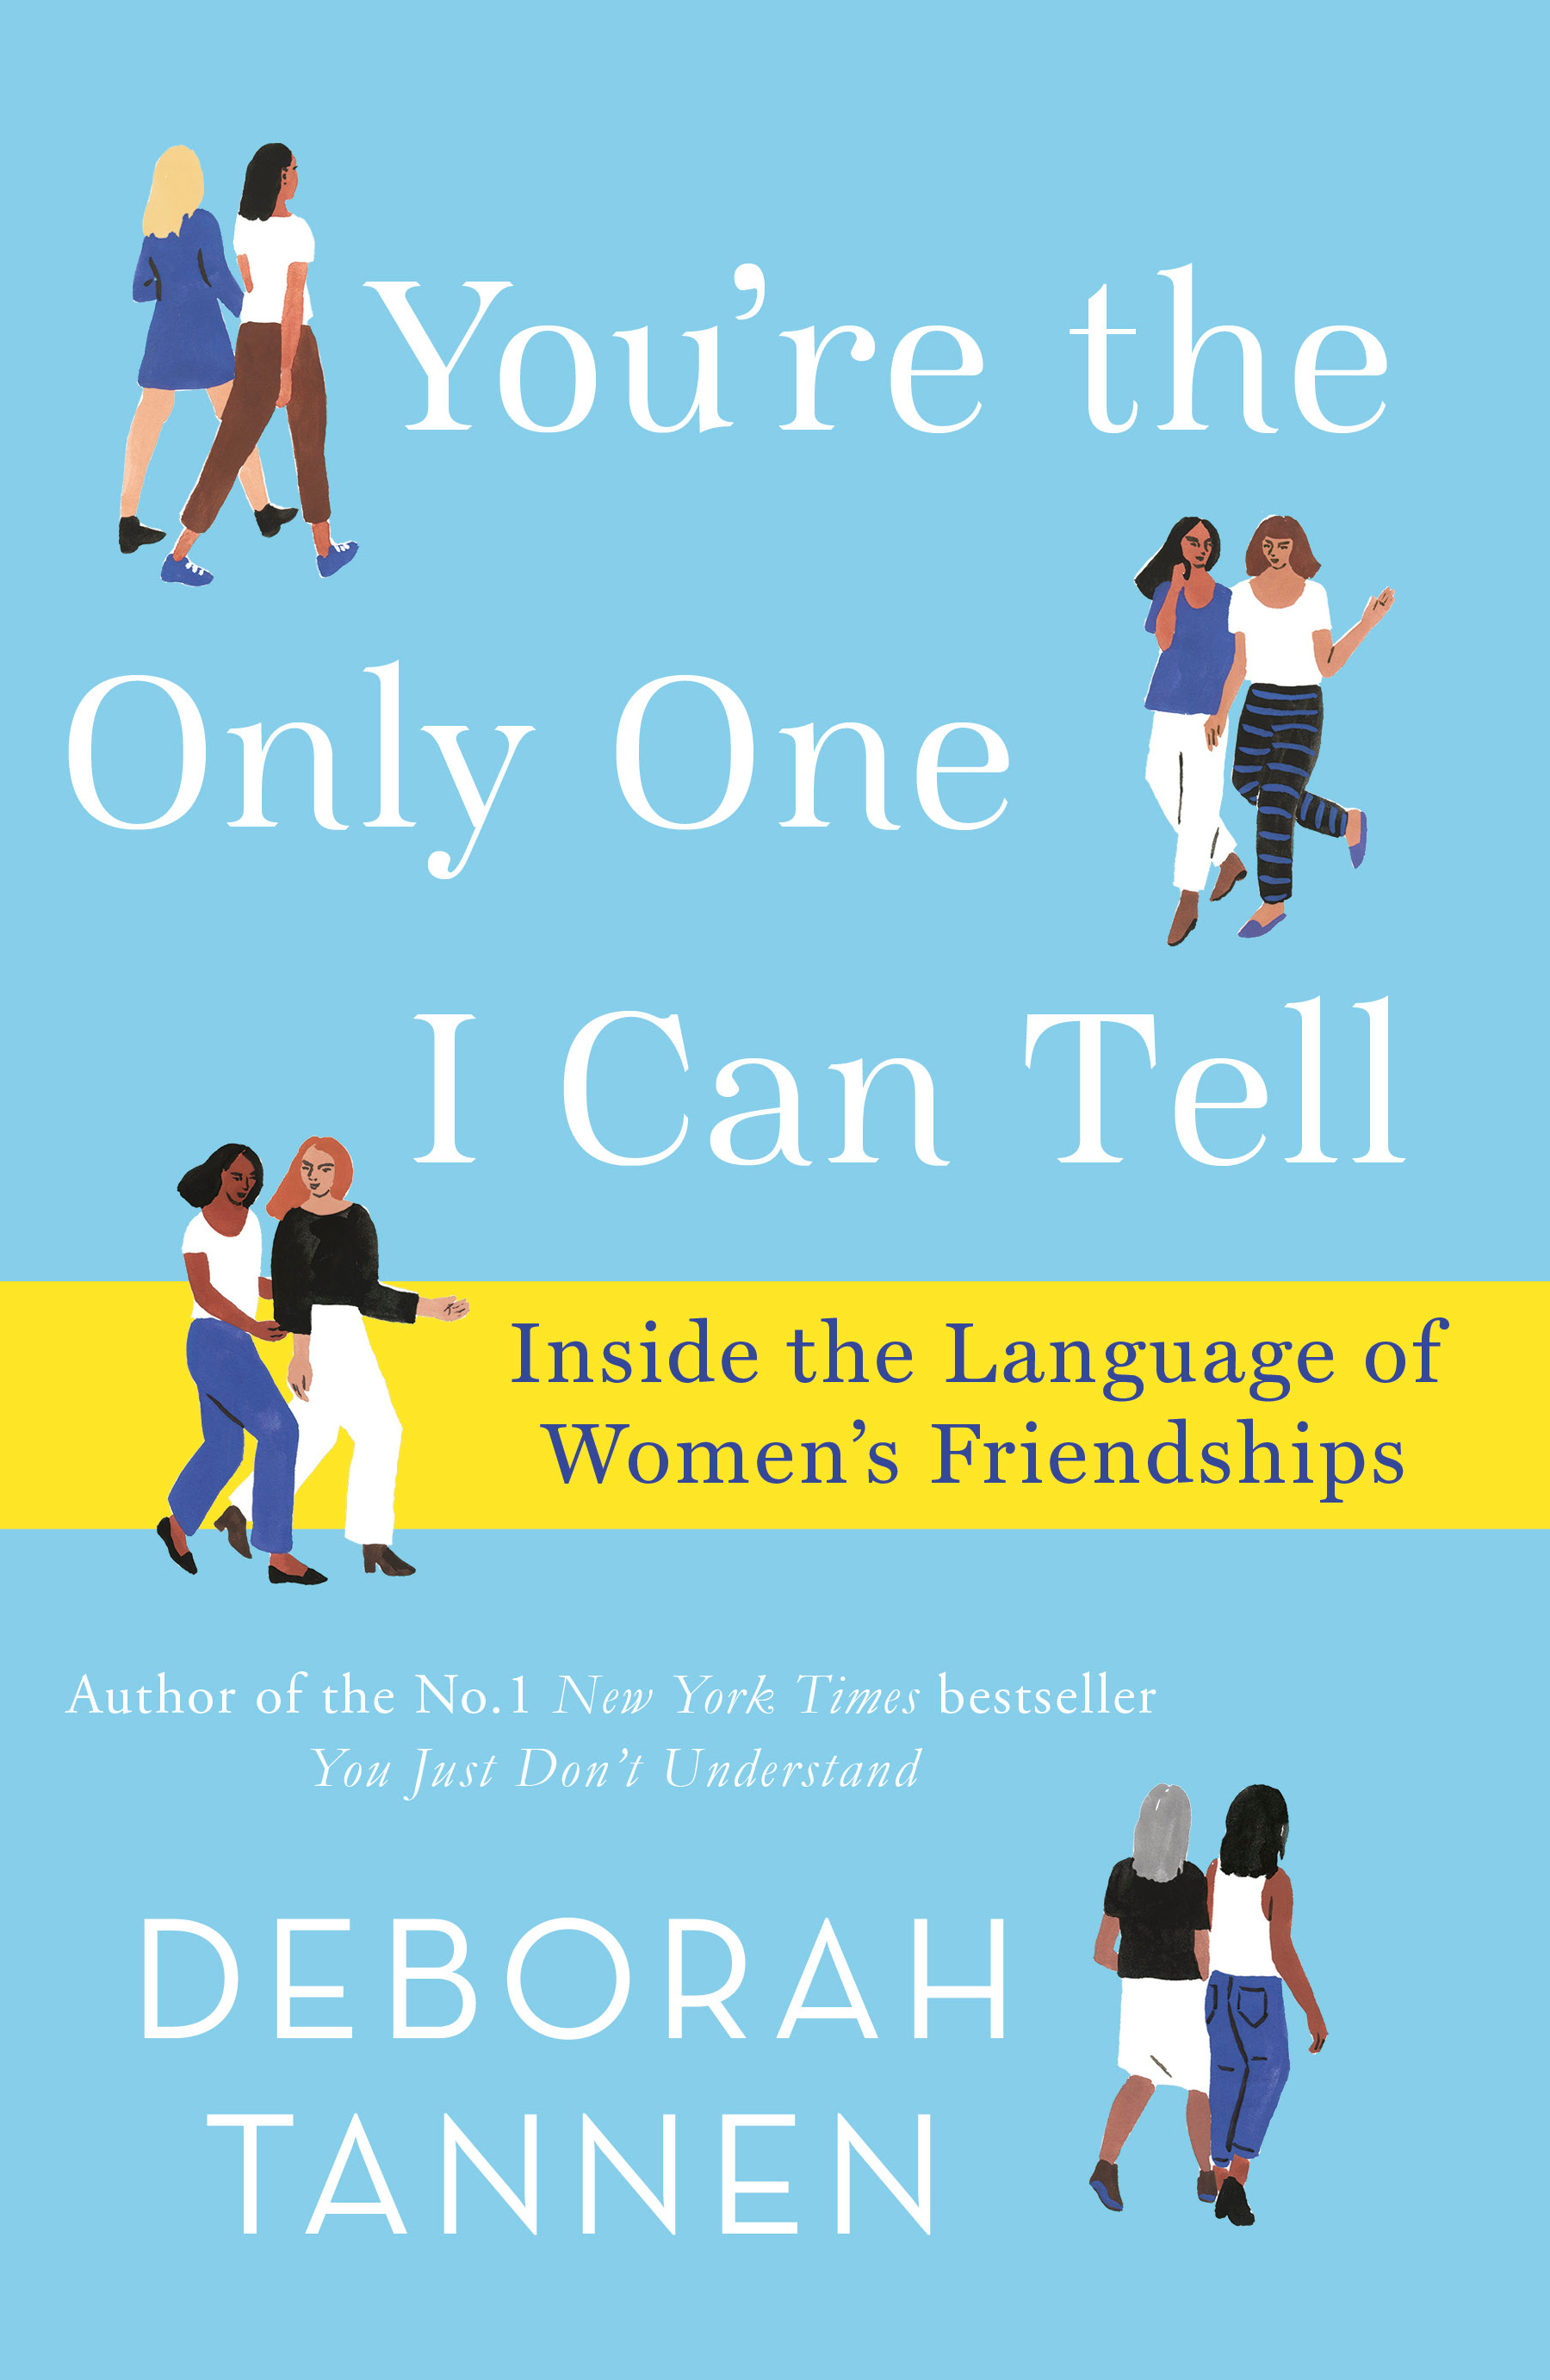 You're the Only One I Can Tell: Inside the Language of Women's Friendships by Deborah Tannen, ISBN: 9780349010250